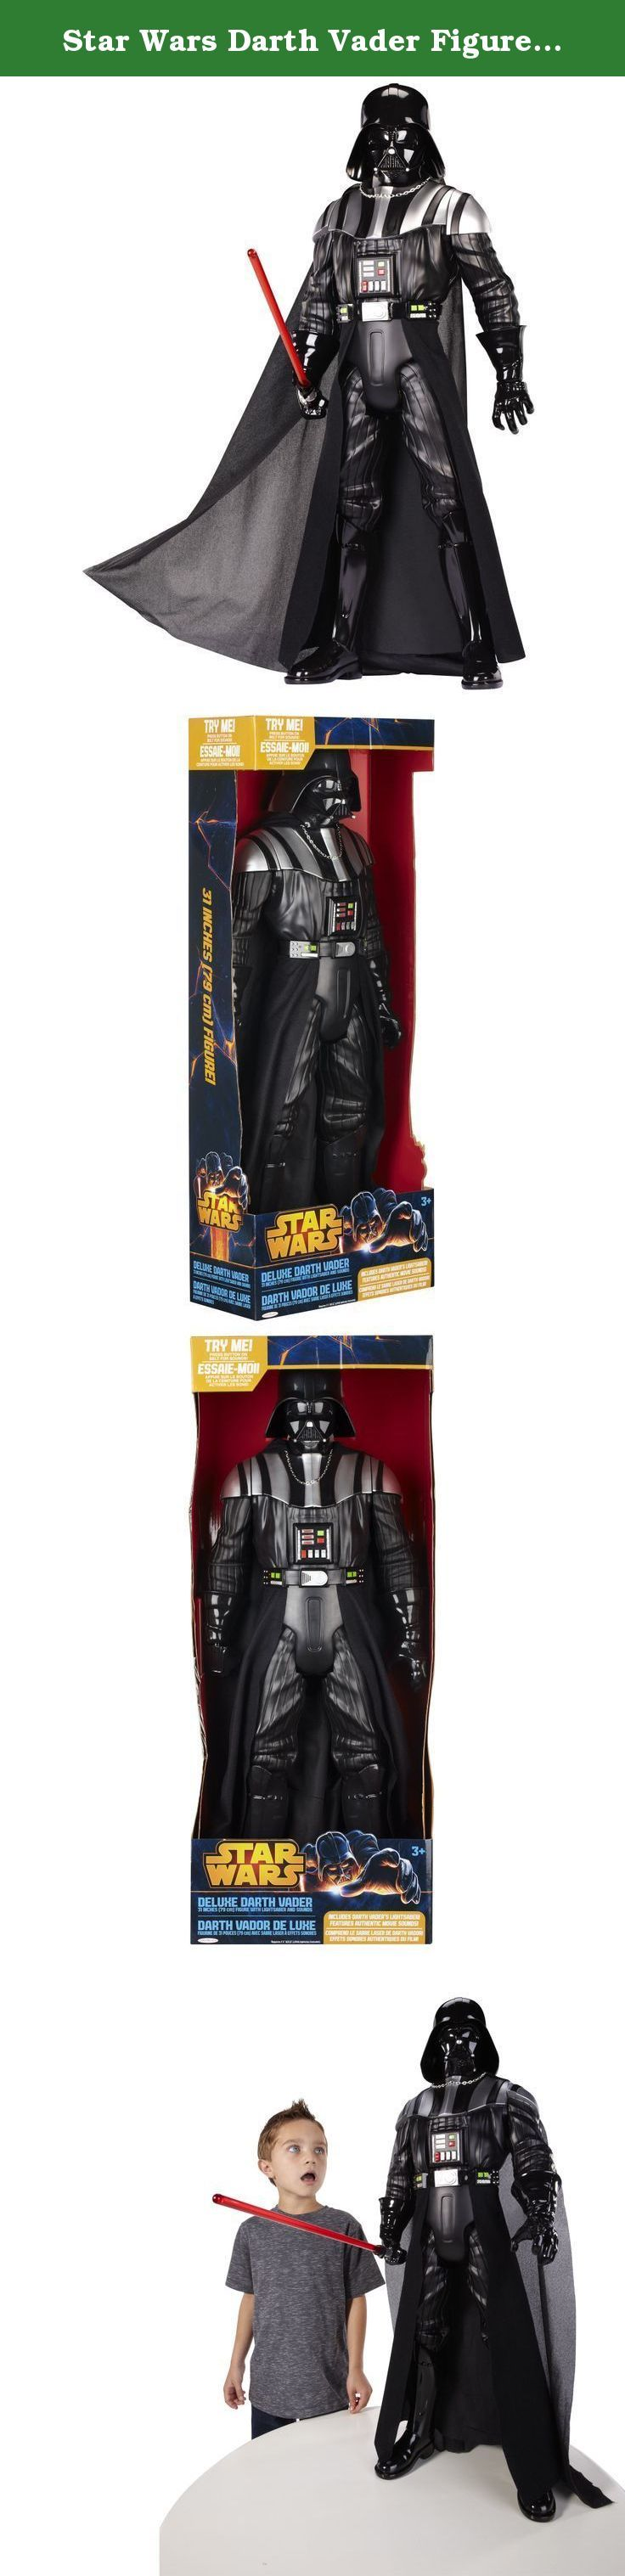 Star Wars Darth Vader Figure, Large. Press the green button and he speaks the famous Darth Vader phrases like `The force is strong with this one` and `You don't know the power of the dark side`. There are also other sounds from the movie.